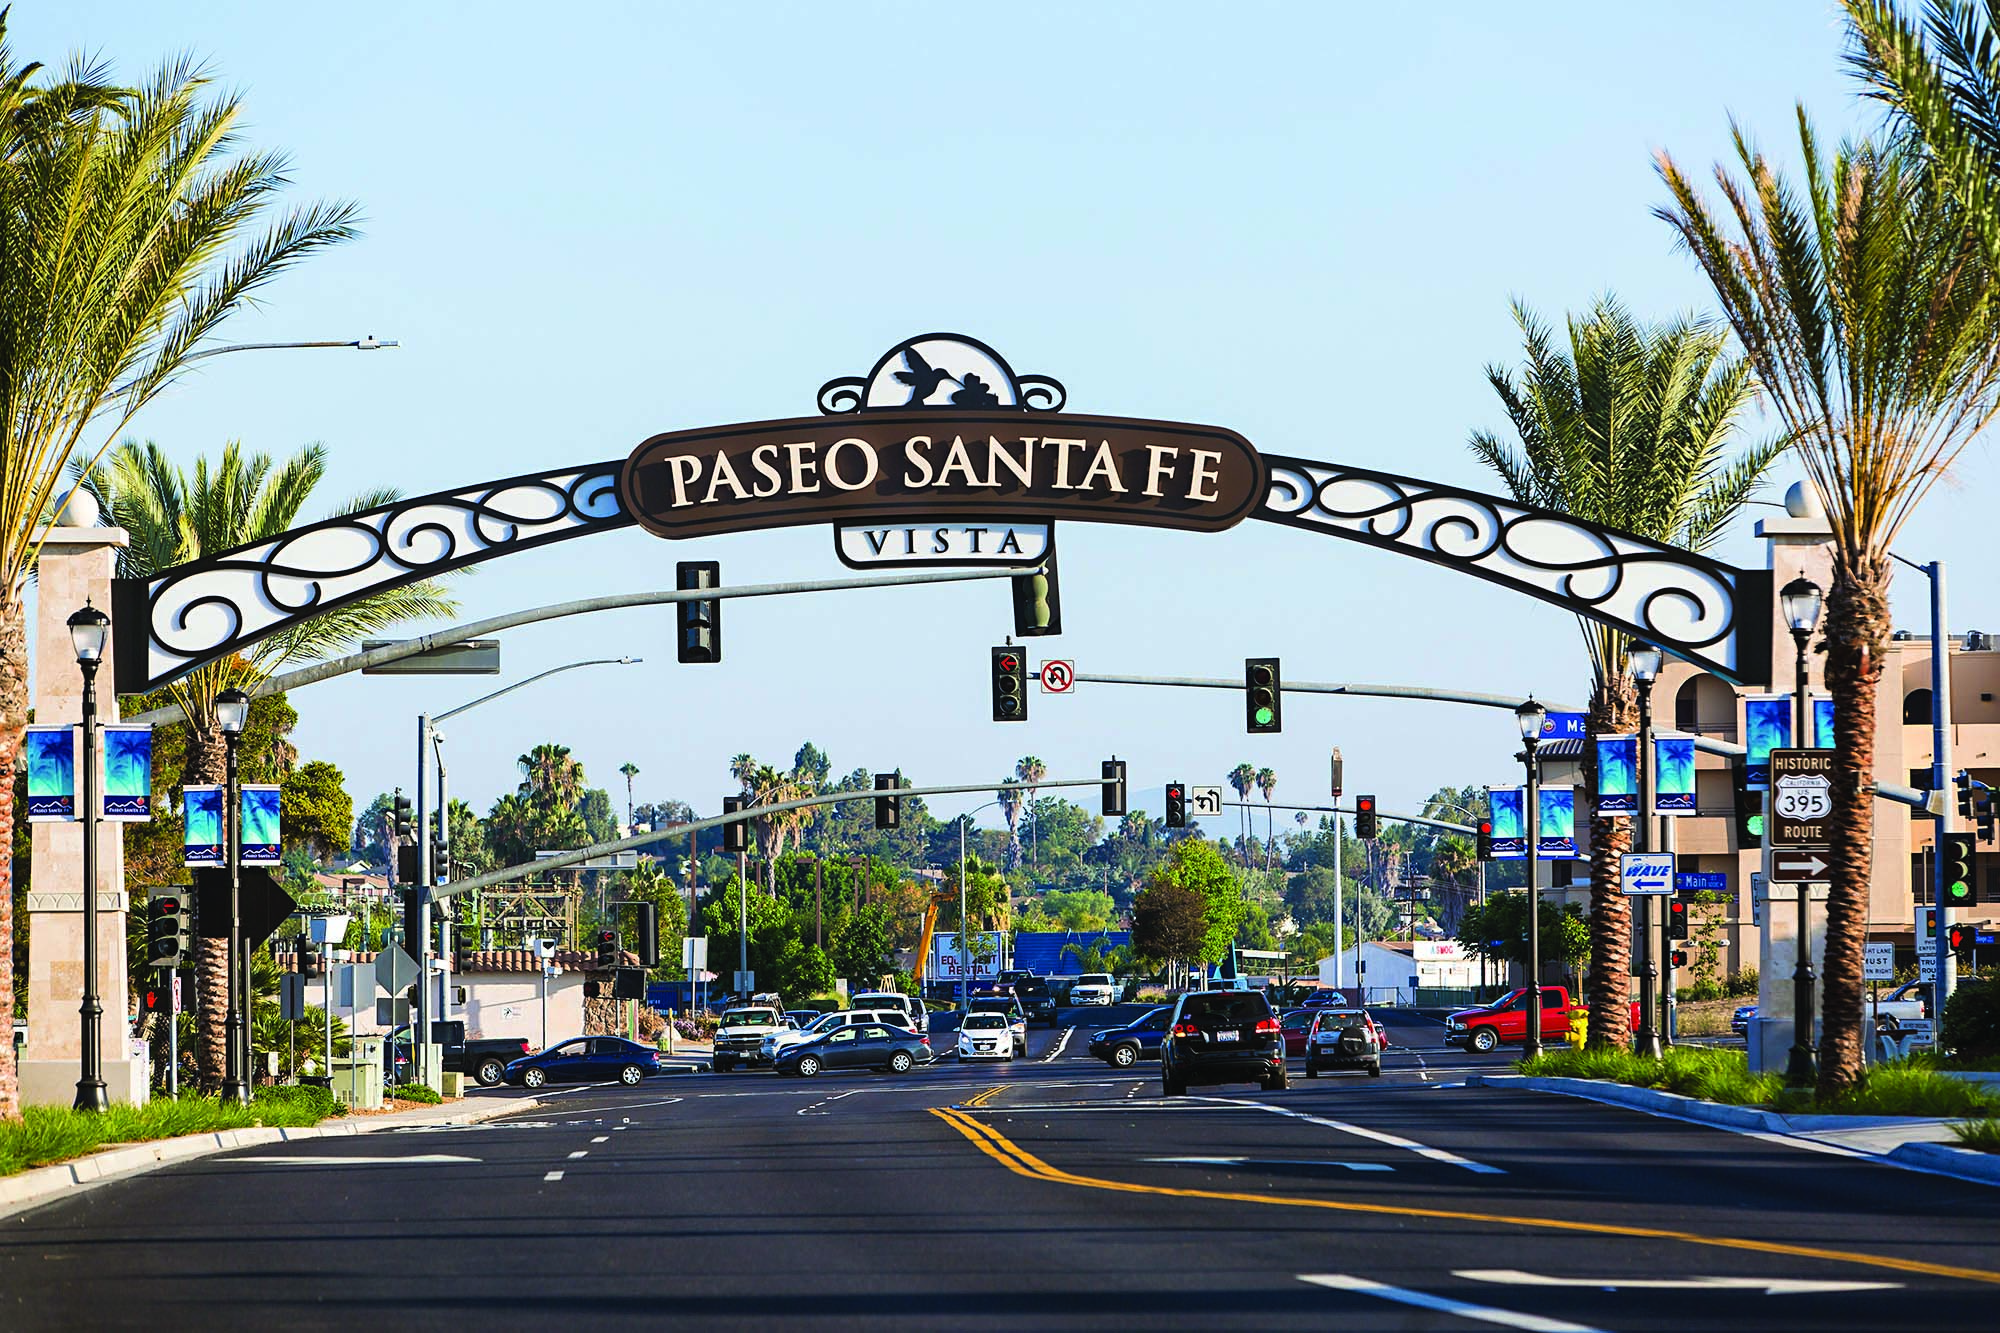 City of Vista project wins countywide award